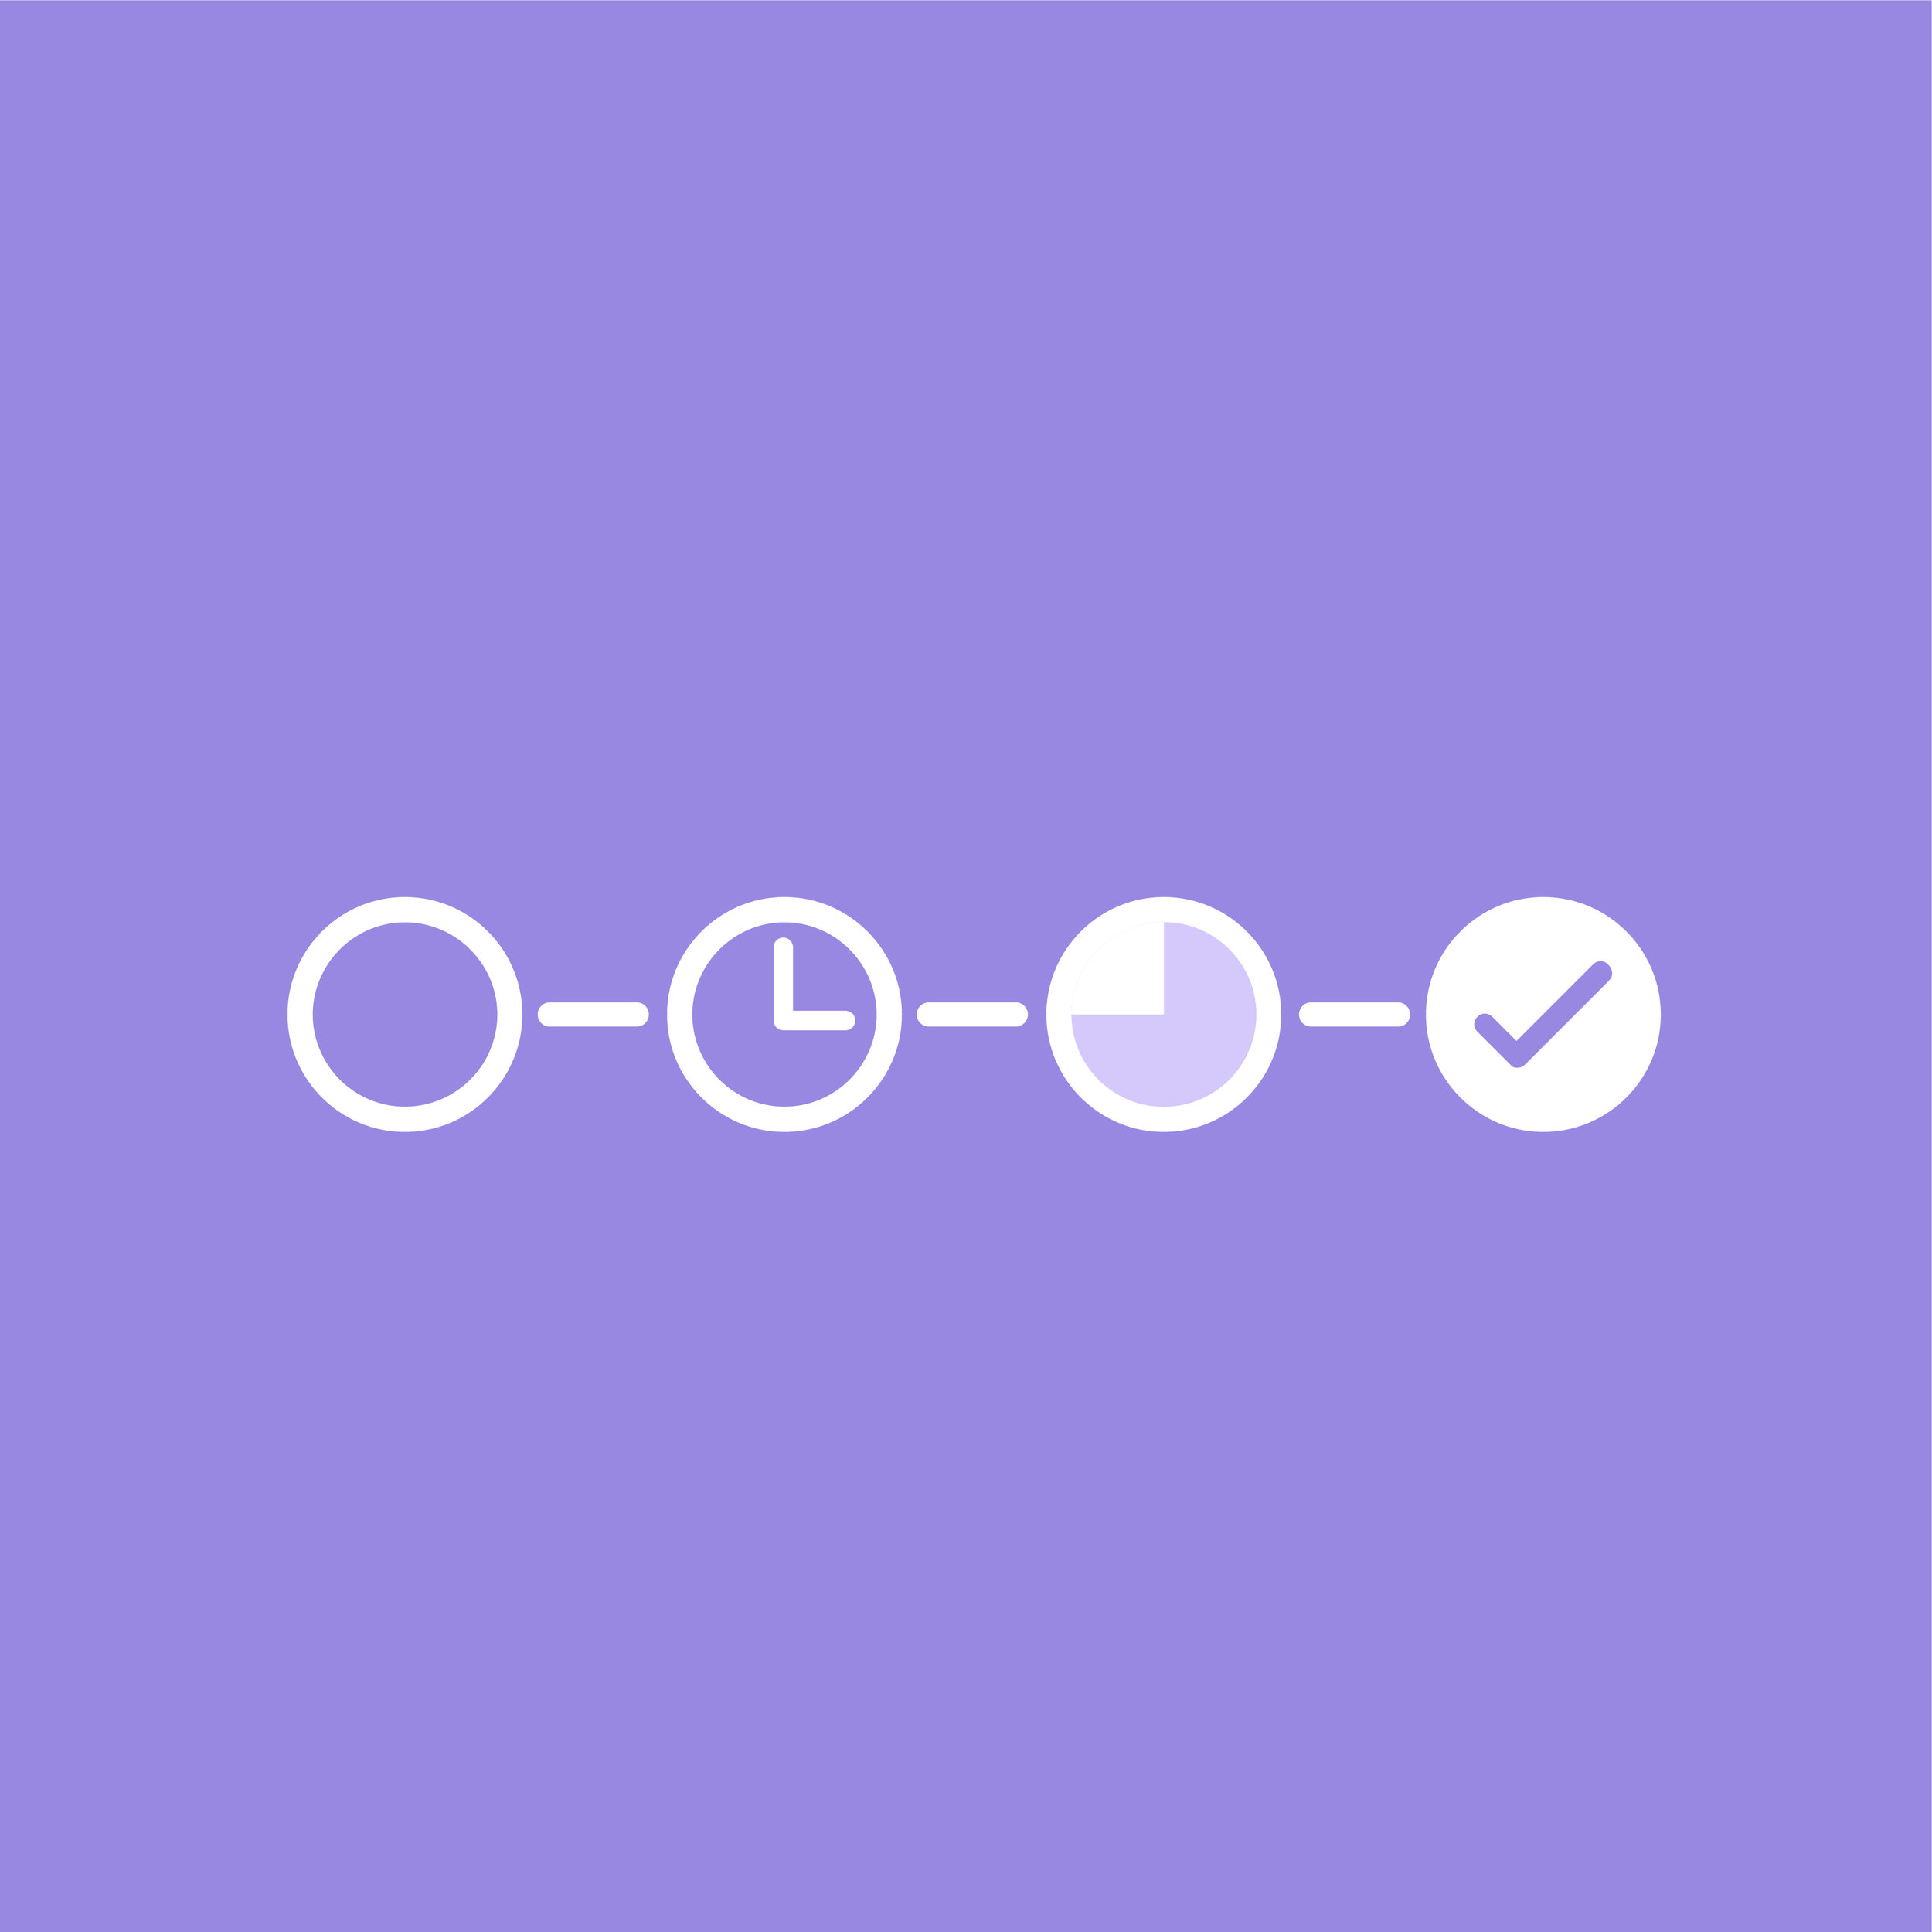 Track Status - Get notified when someone in your group marks a task as completed, and track when a task is due.